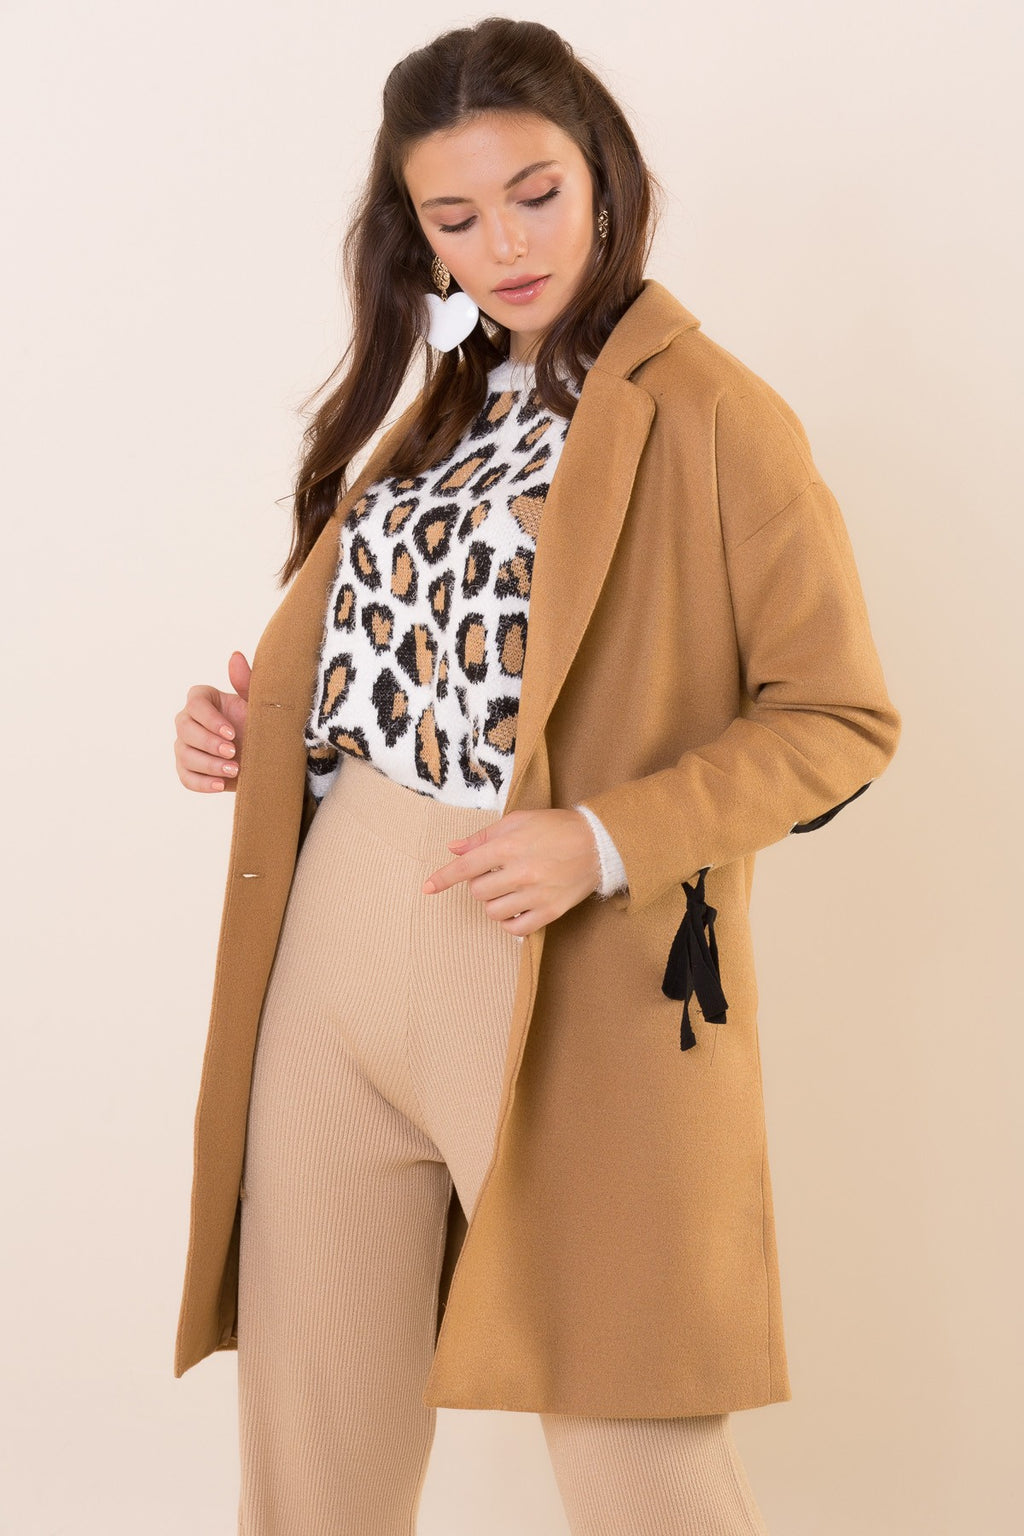 Jacket Collar Lace-up Brown Coat -(Contest)